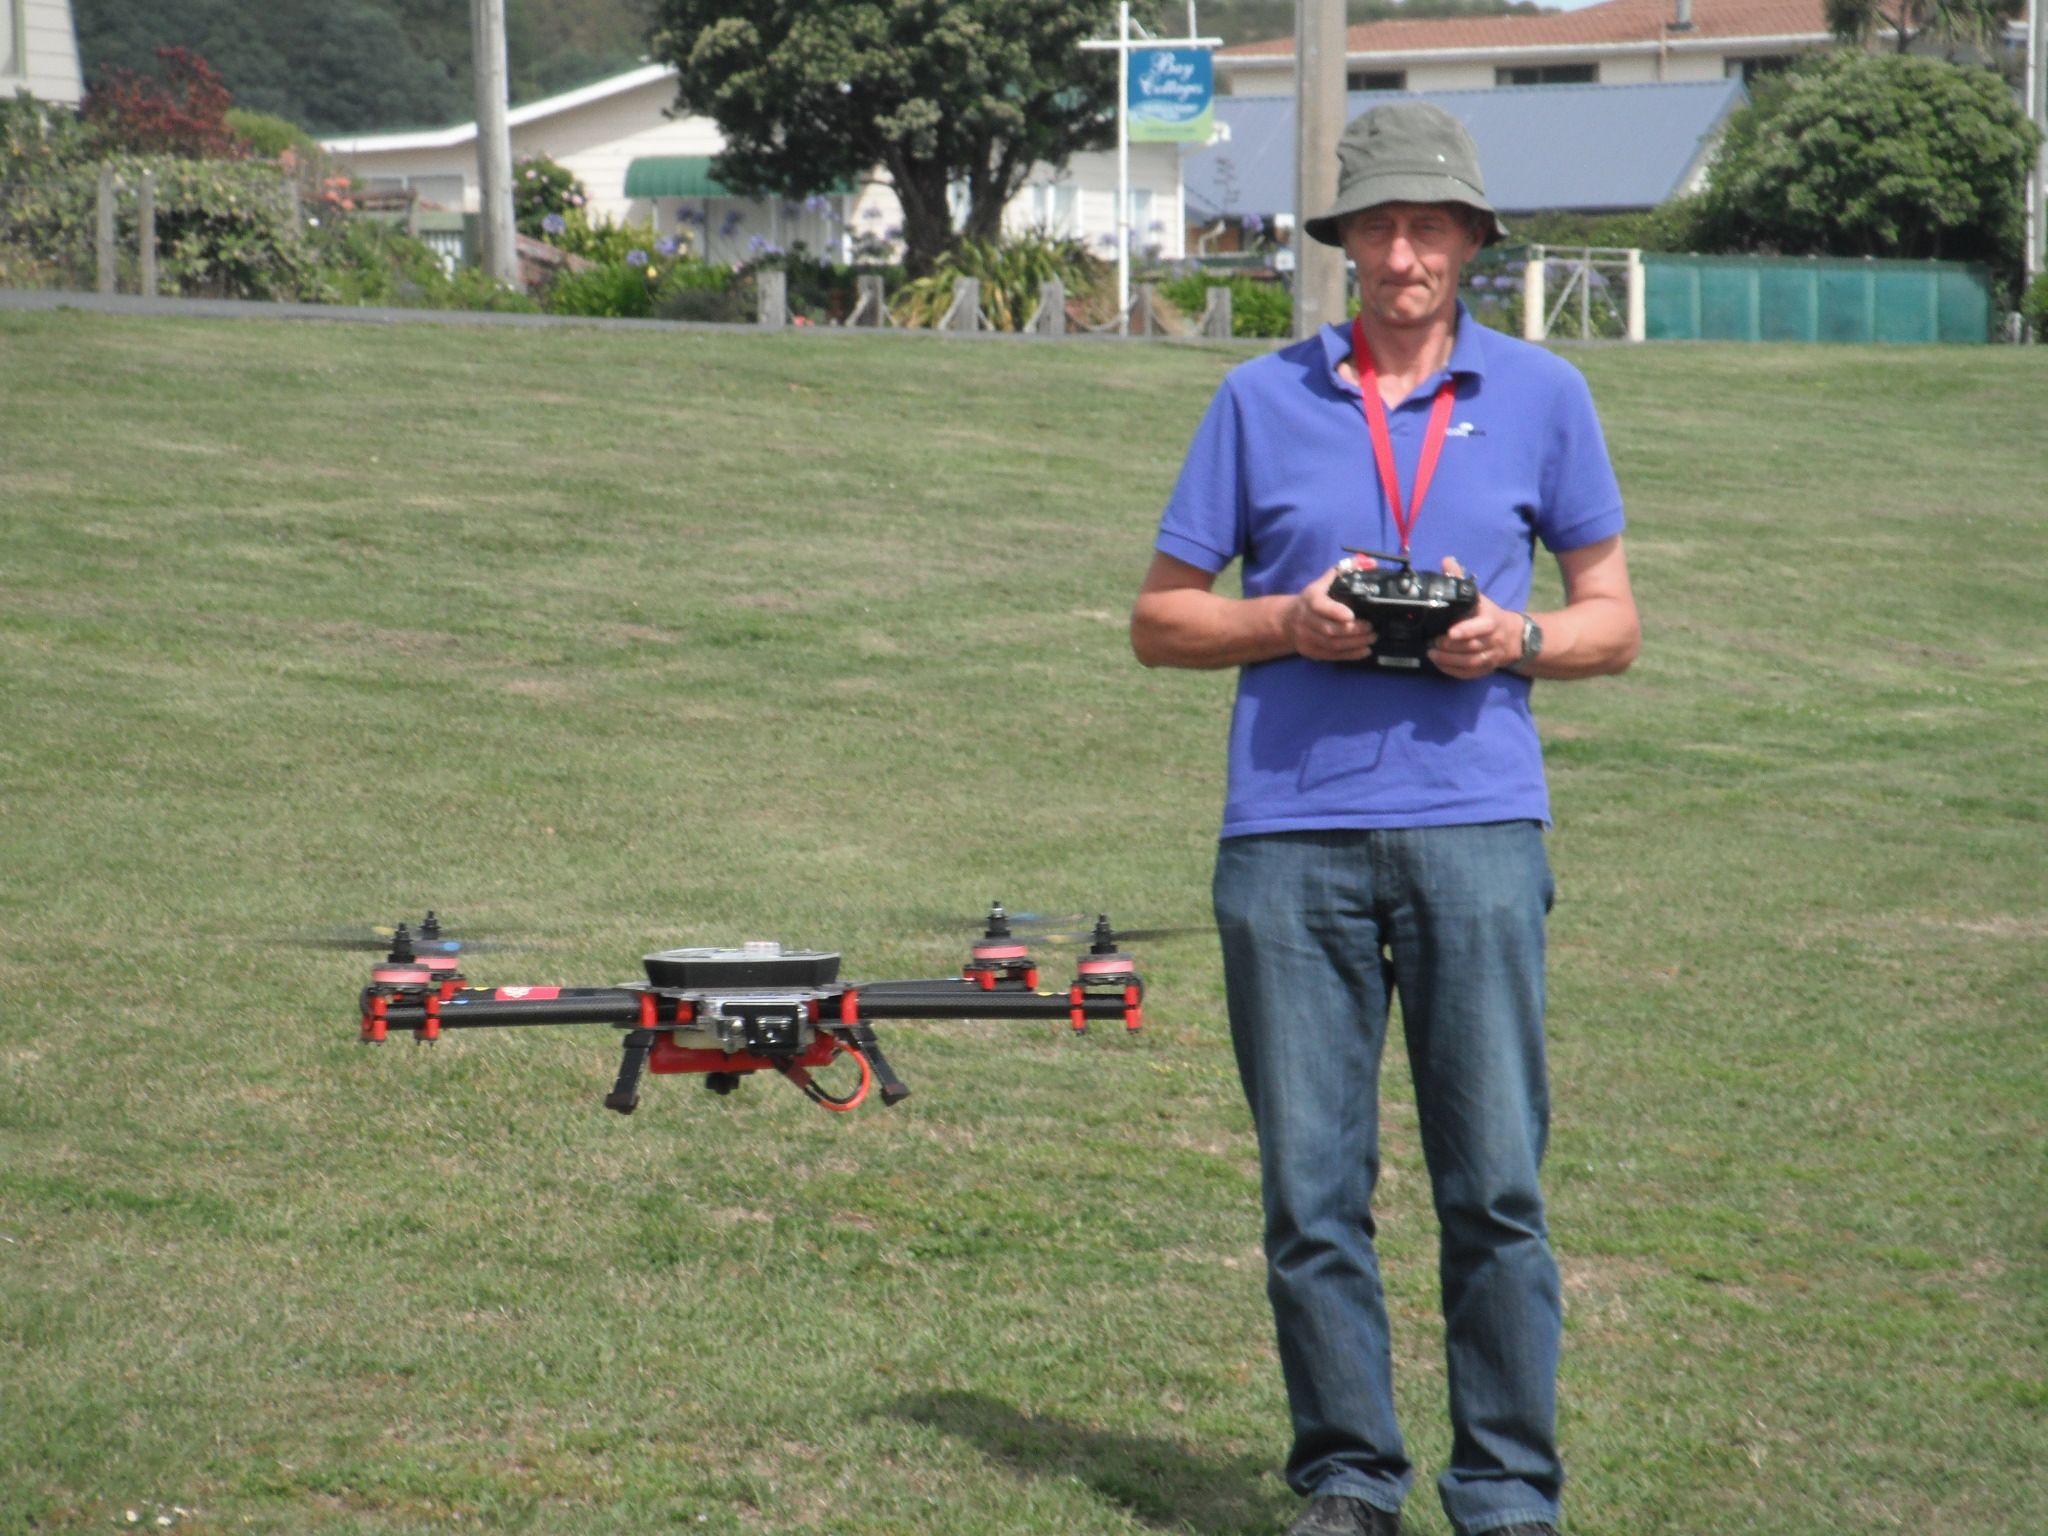 Engineer and quadcopter